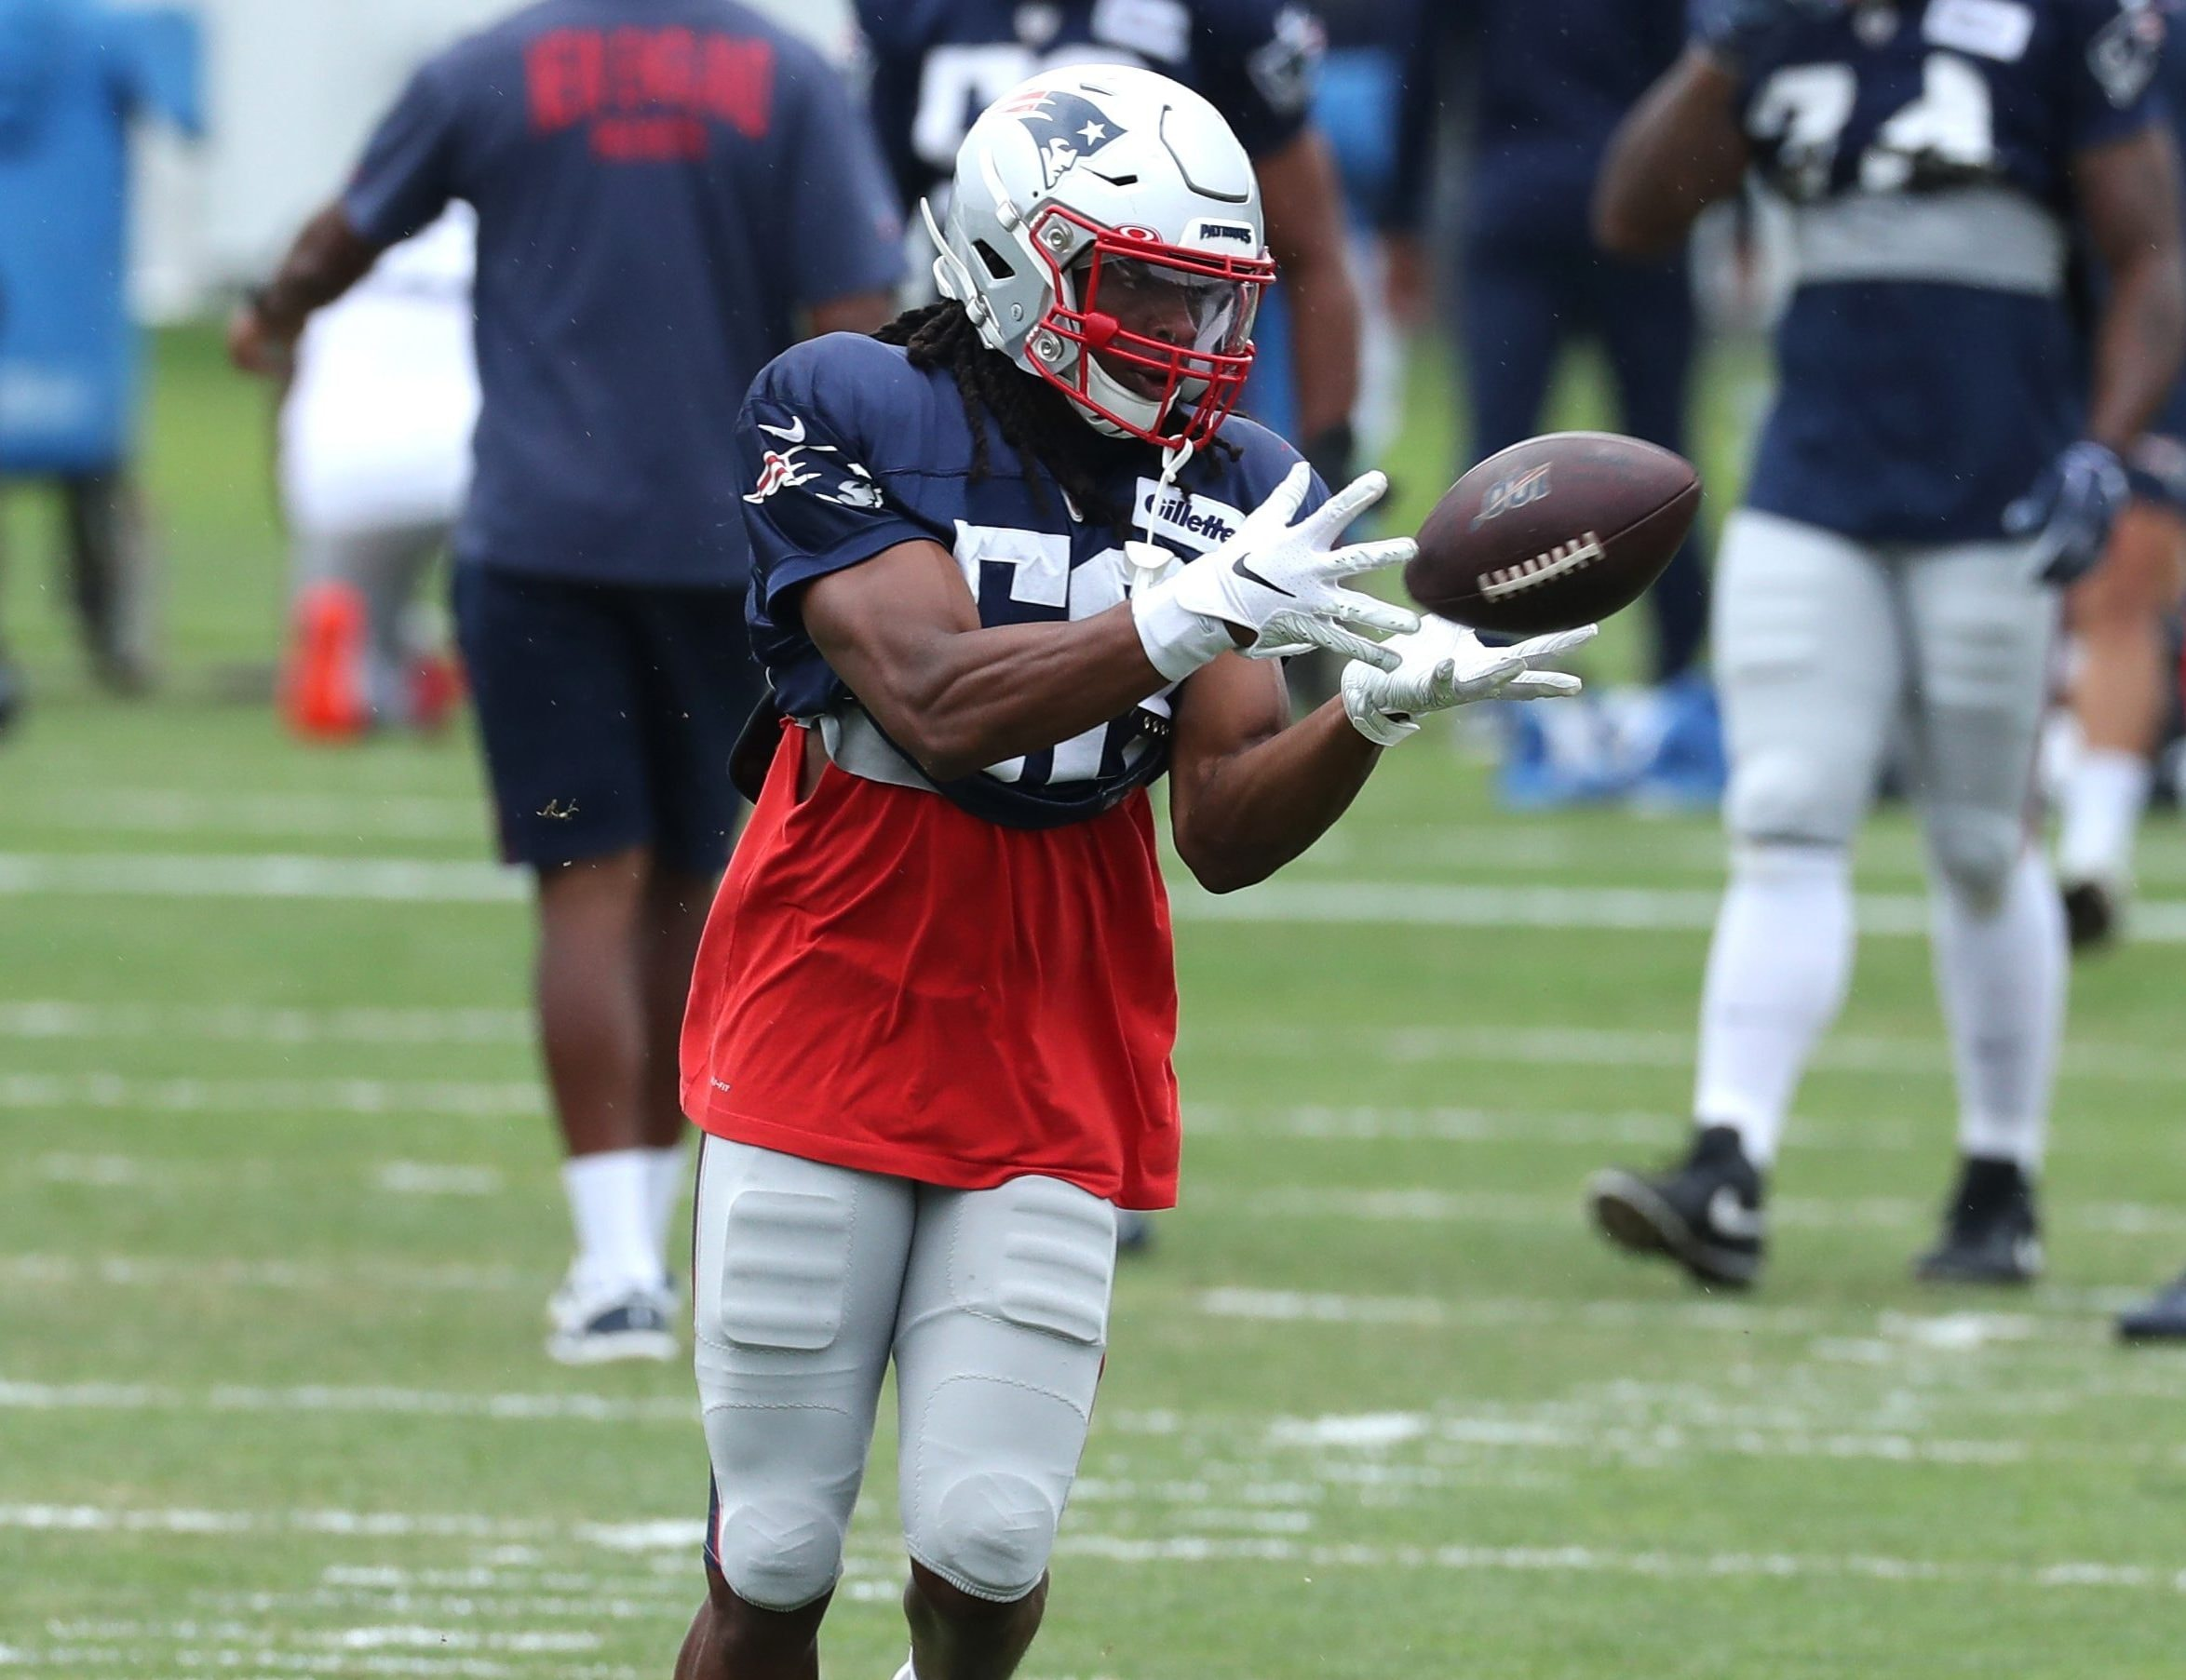 Patriots safety Kyle Dugger has a chance to keep showing off his playmaking in Week 3 against the Raiders. (Photo courtesy of the New England Patriots)